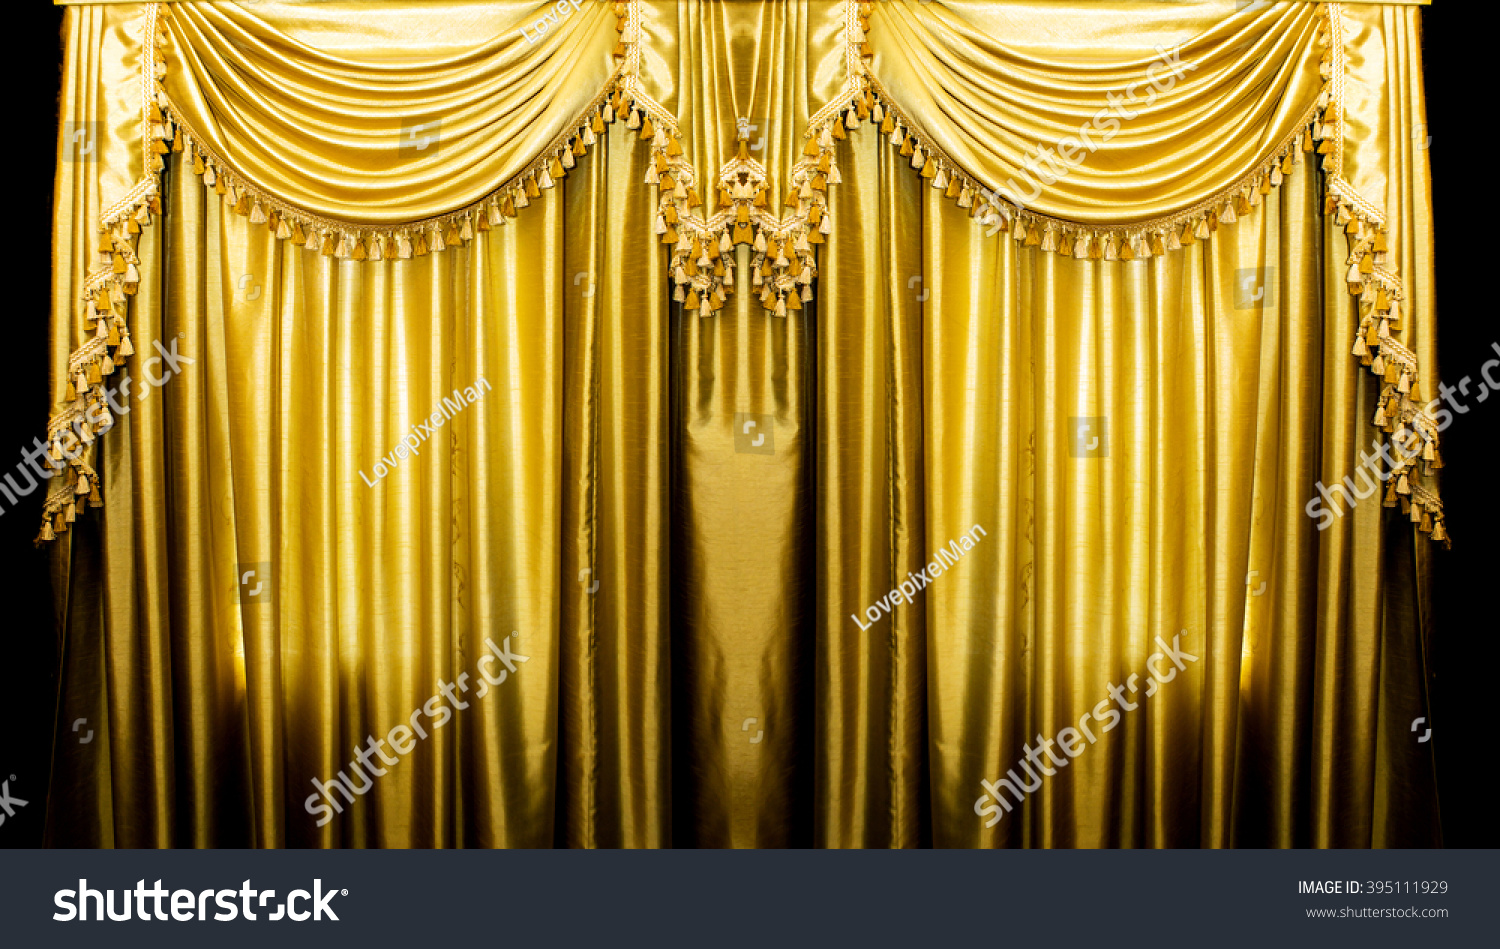 Gold Curtains On Stage For Background